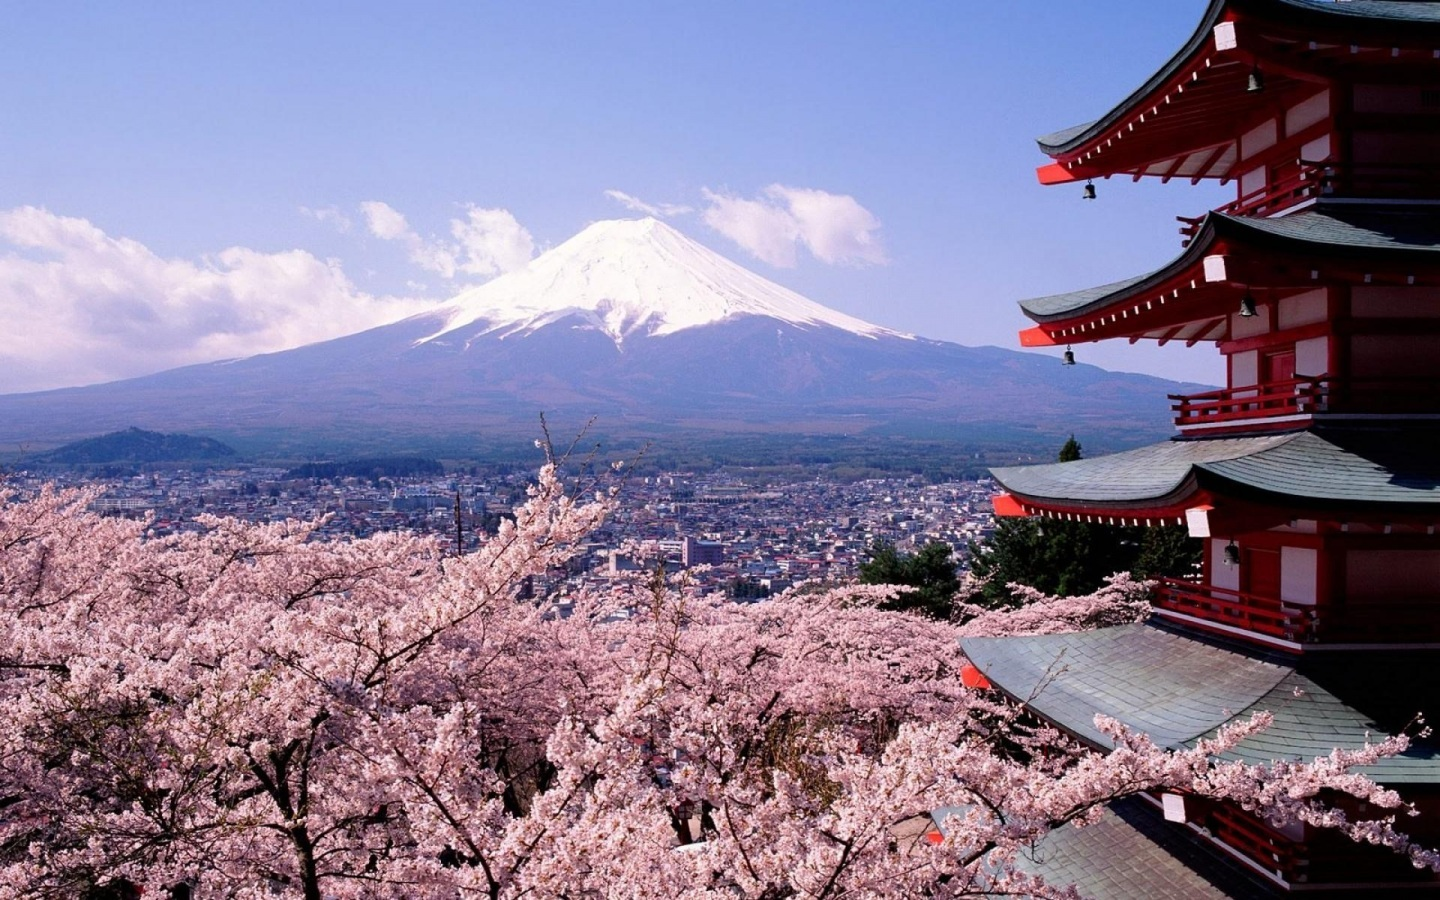 fuji-japan-wallpaper-high-quality-and-japan-wallpaper-widescreen-hd-iphone-wallpapers-free-download-ipad-guide-pack-girl-wallpaper-295462683.jpg